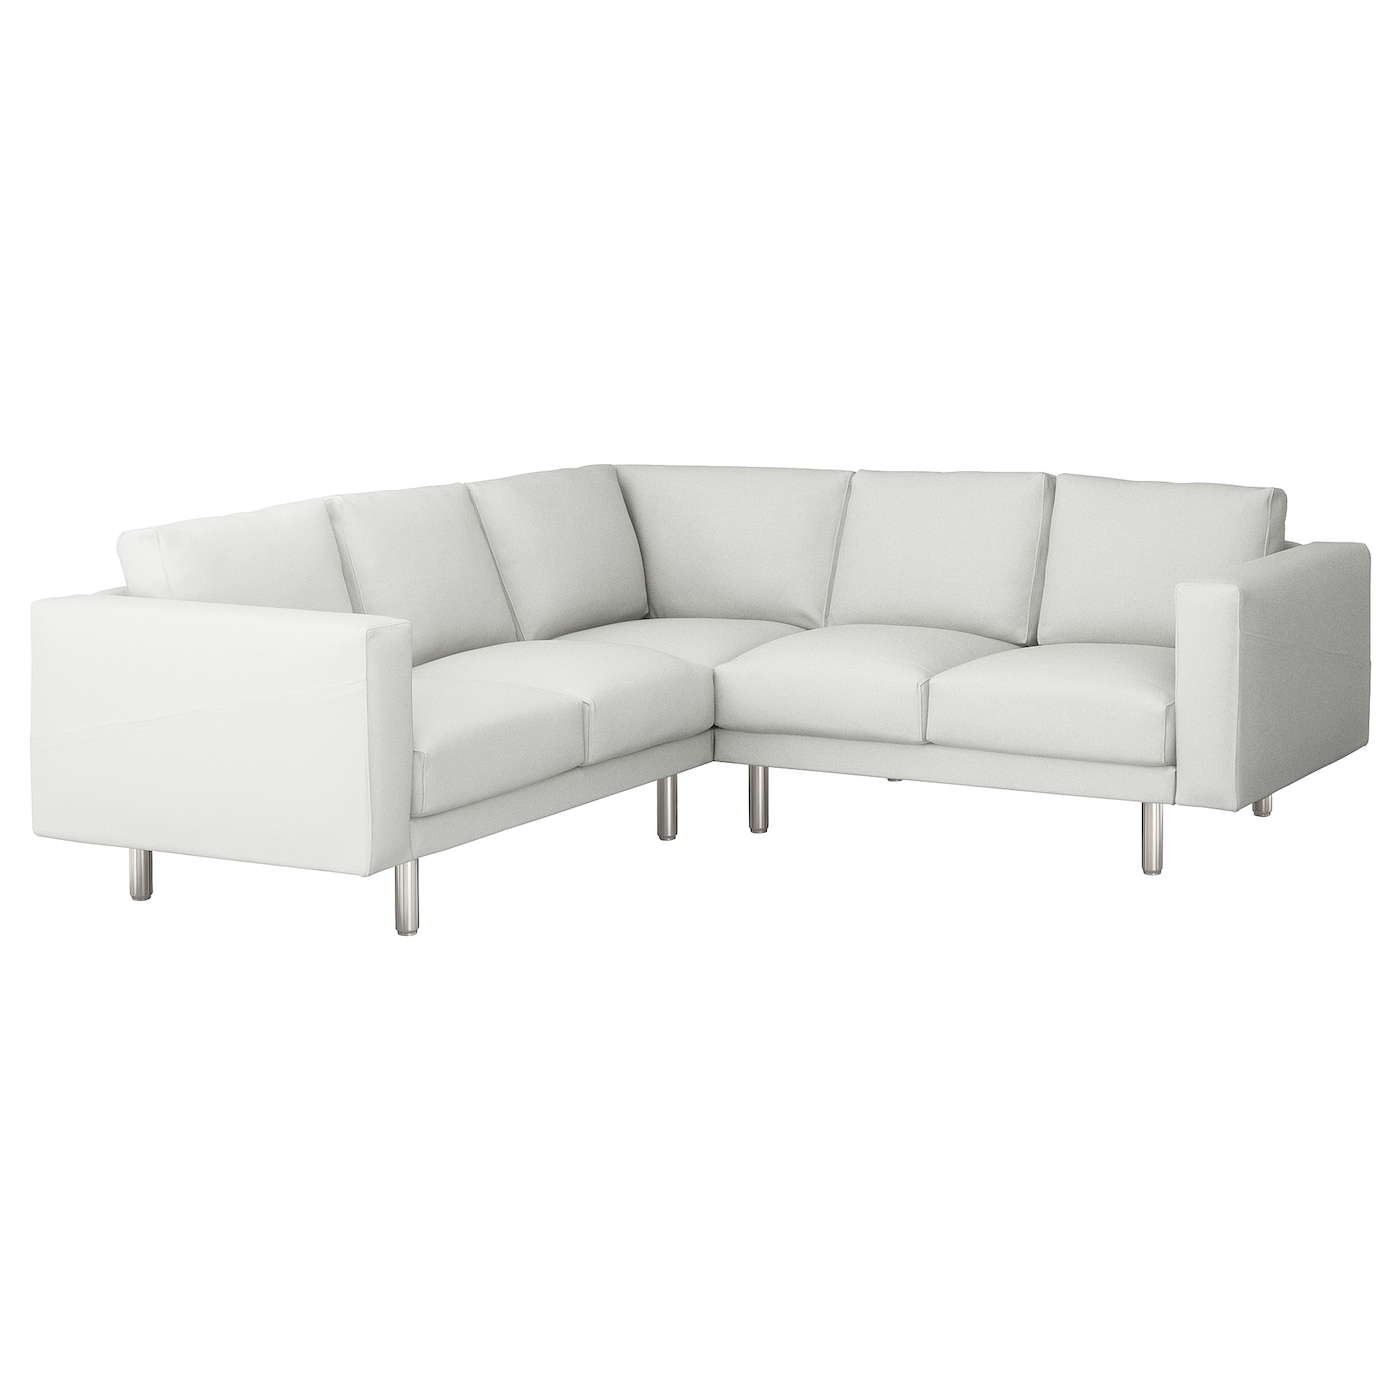 norsborg corner sofa 4 seat finnsta white metal ikea. Black Bedroom Furniture Sets. Home Design Ideas